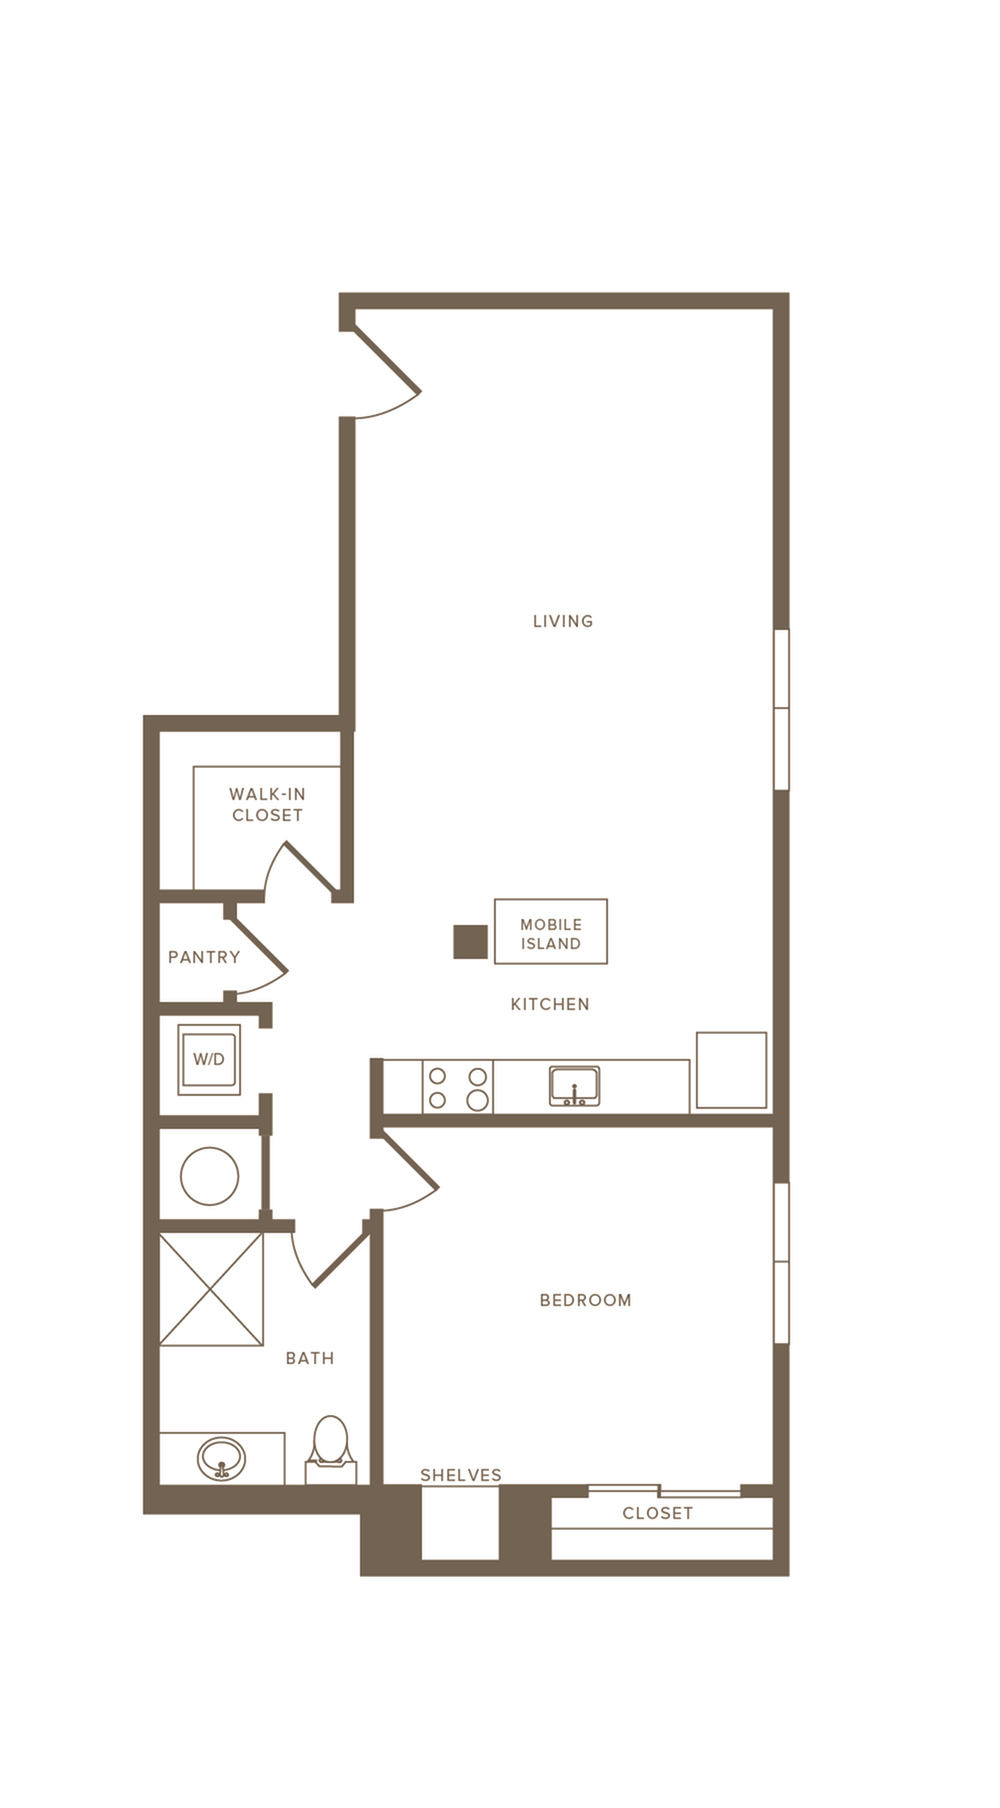 978 square foot one bedroom one bath apartment floorplan image